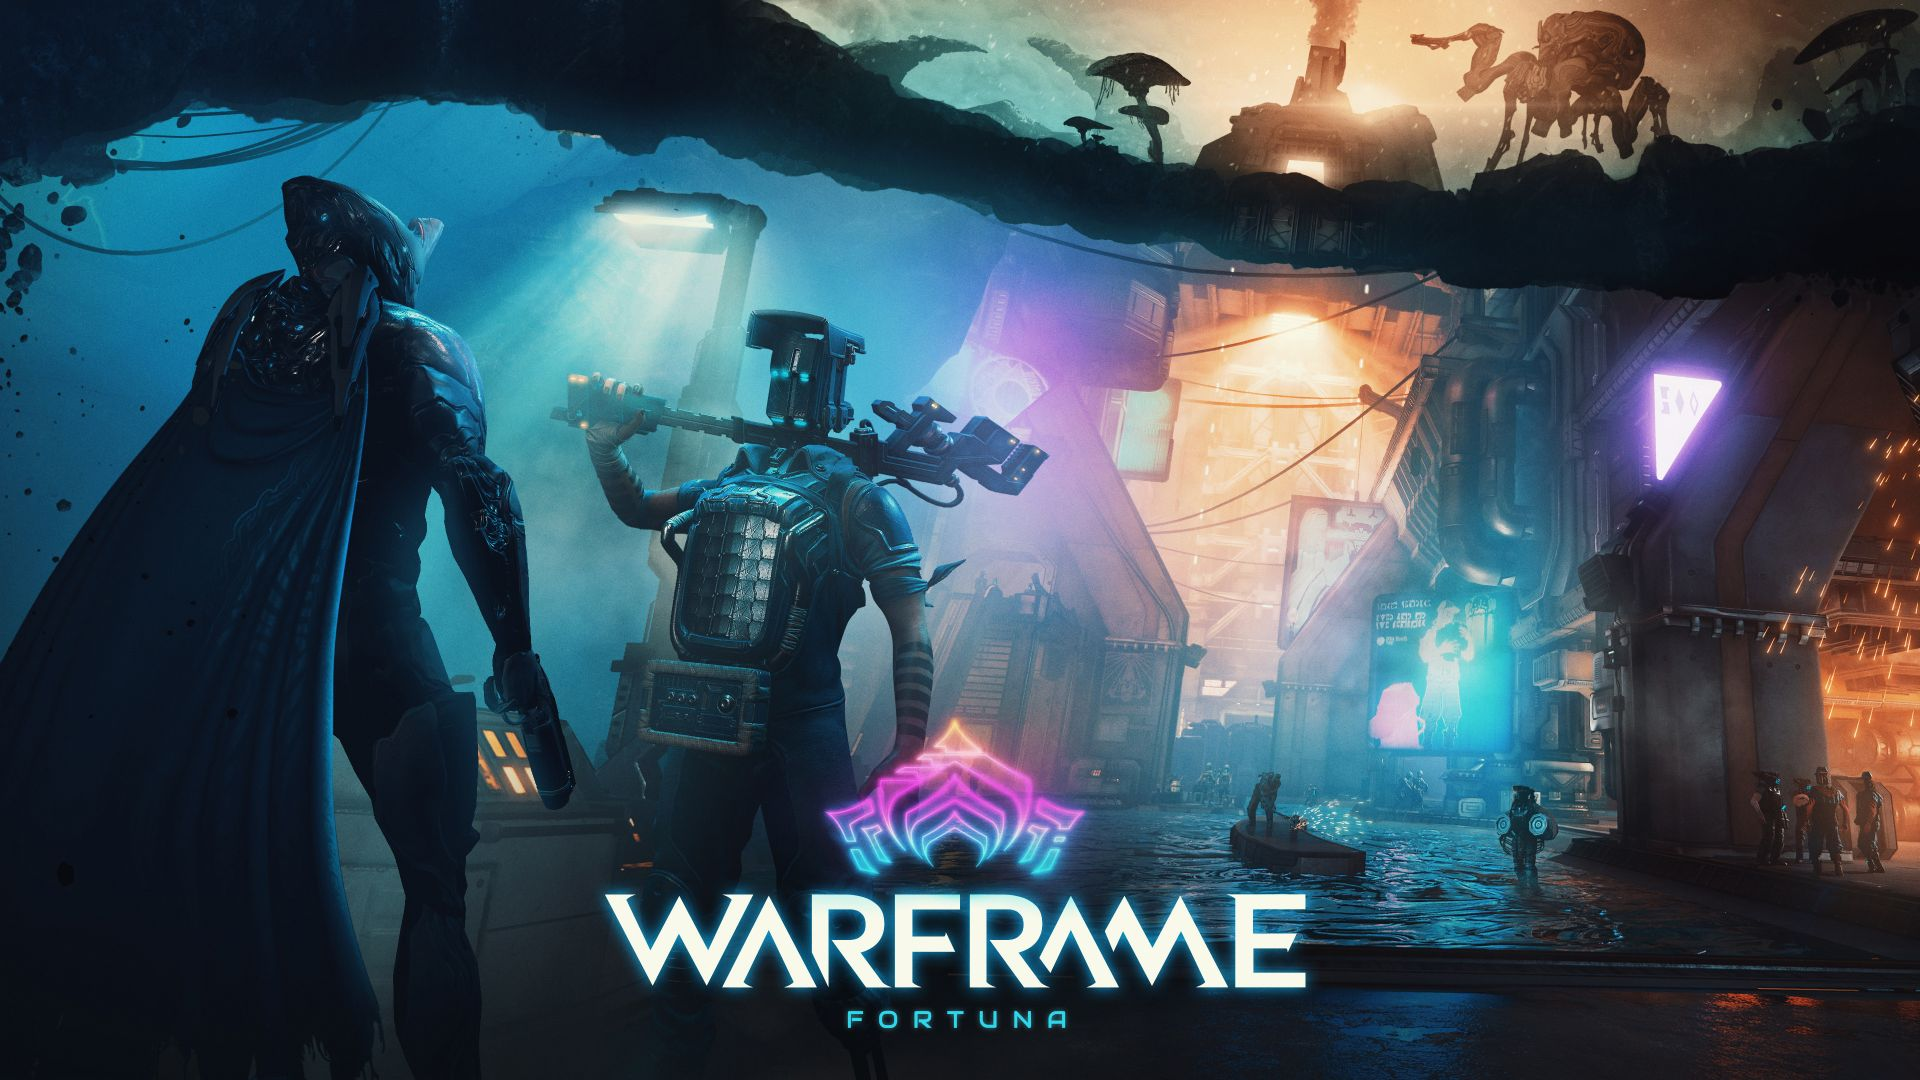 Варфрейм Фортуна, Warframe Fortuna, artwork, poster, 4K (horizontal)